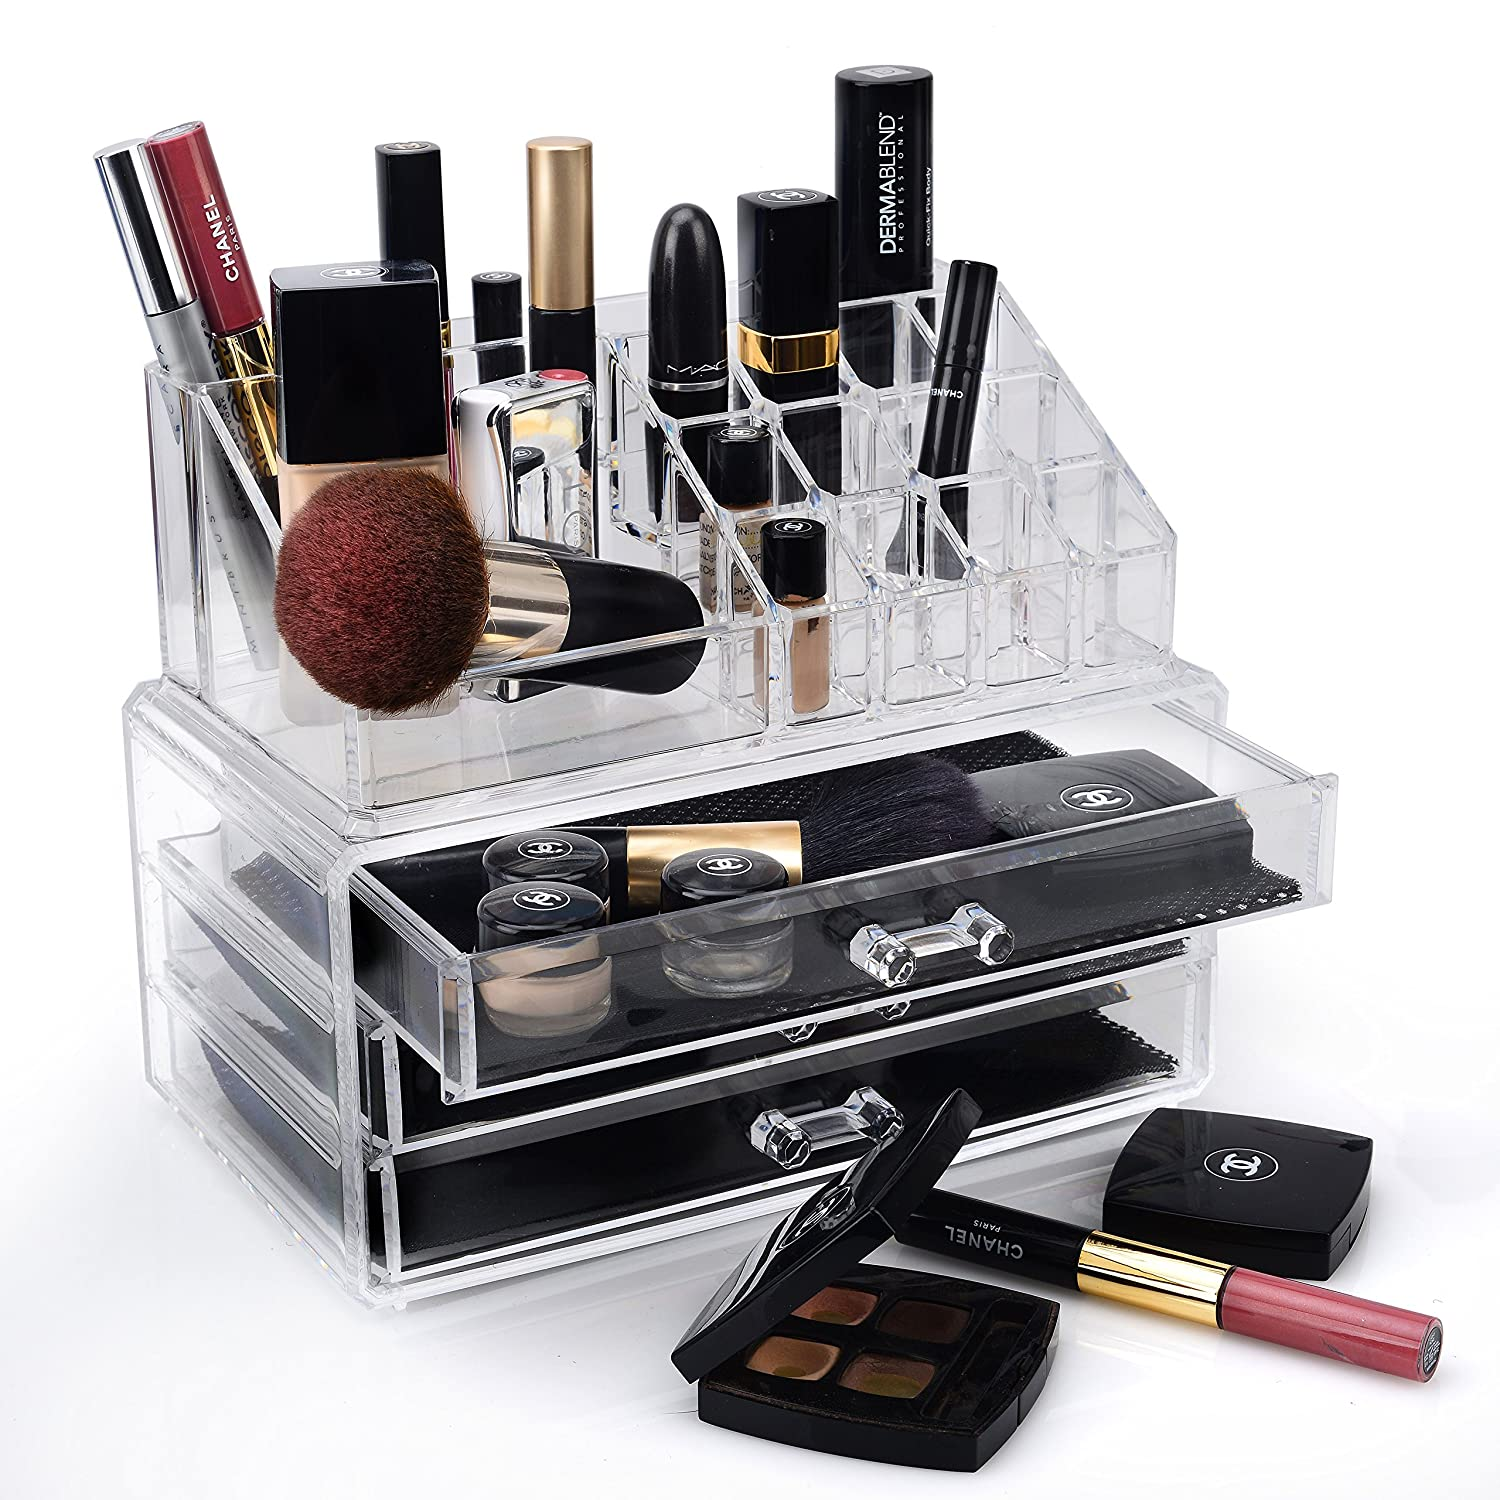 Design Cosmetic Organizer amazon com home it clear acrylic jewelry organizer and makeup cosmetic large 2 drawer chest or make